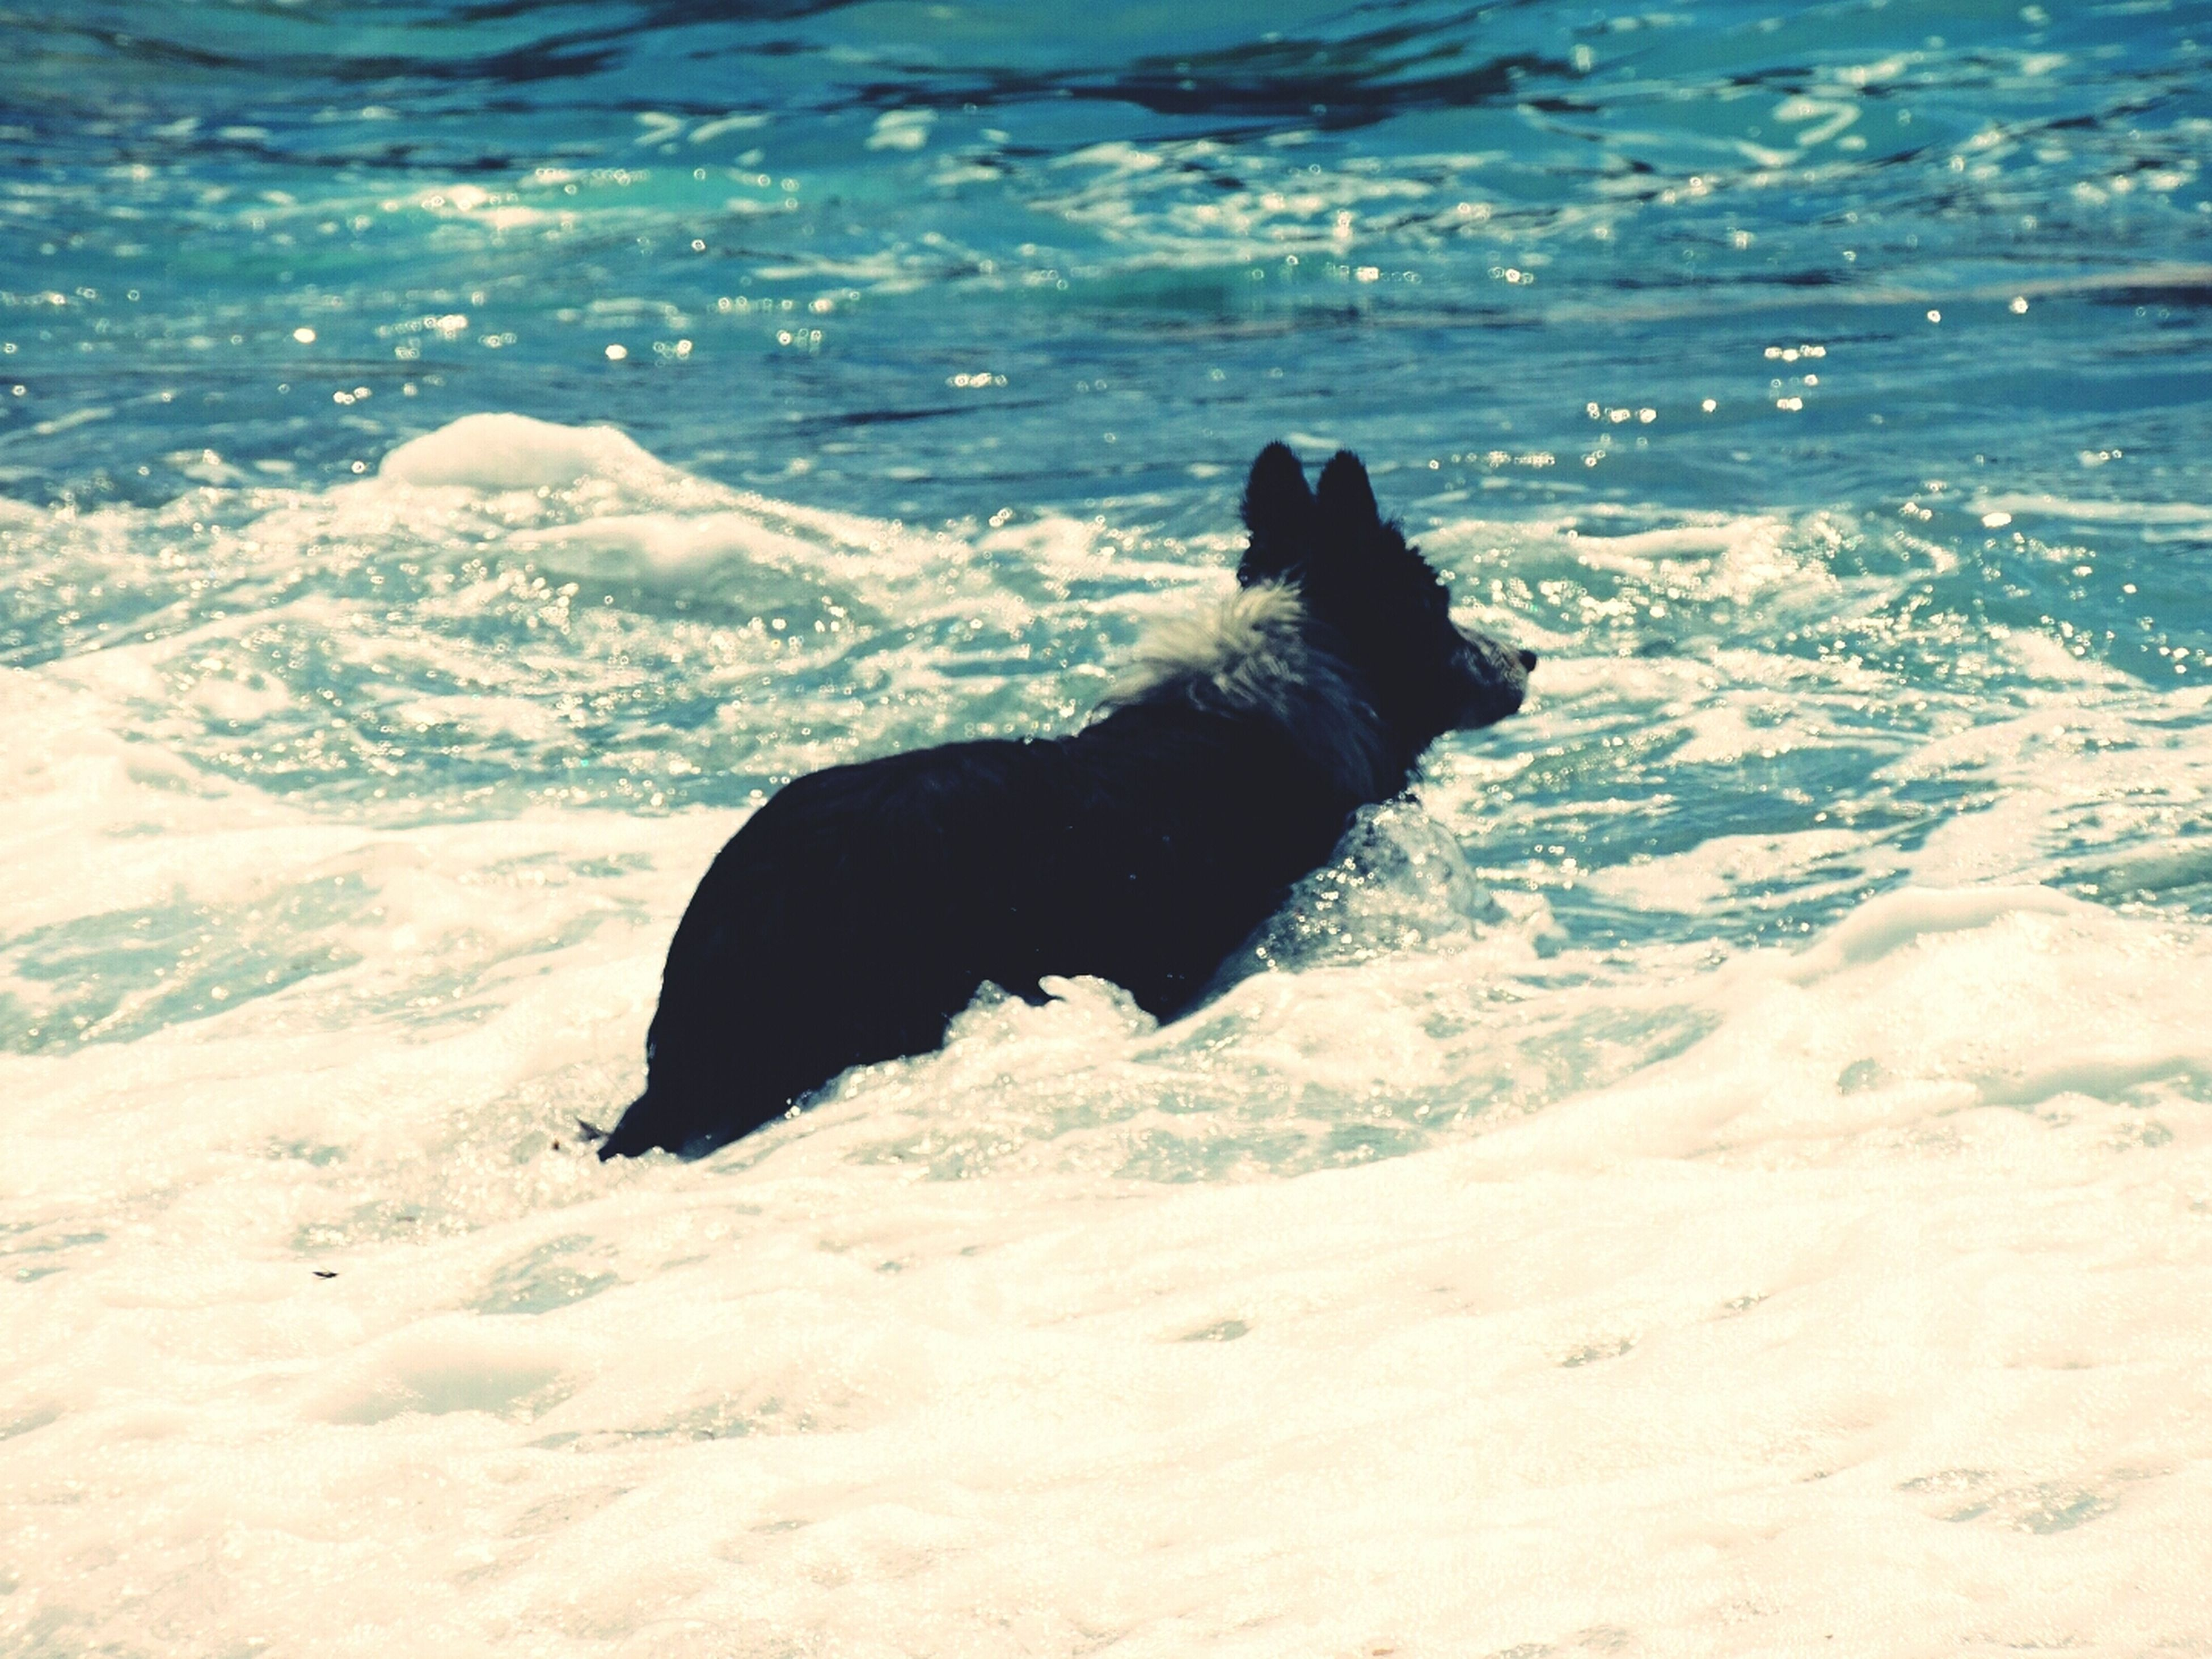 animal themes, one animal, mammal, domestic animals, pets, black color, water, nature, zoology, snow, dog, side view, full length, vertebrate, animal, no people, outdoors, sea, winter, day